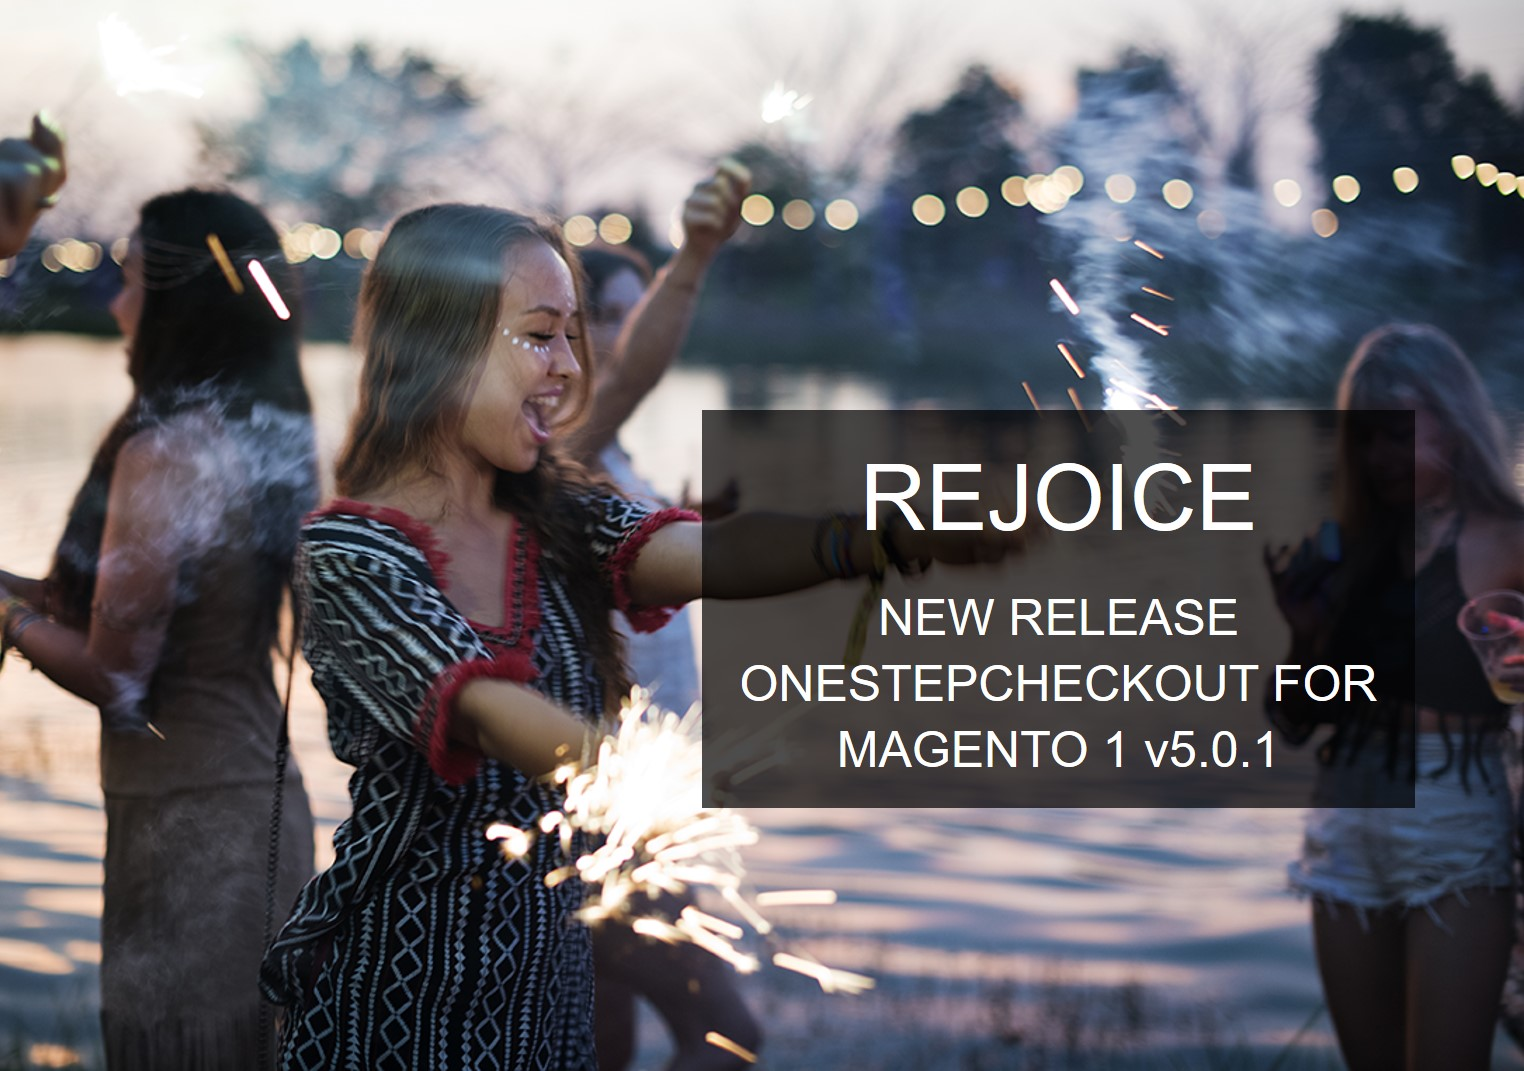 OneStepCheckout for Magento 1 New Release